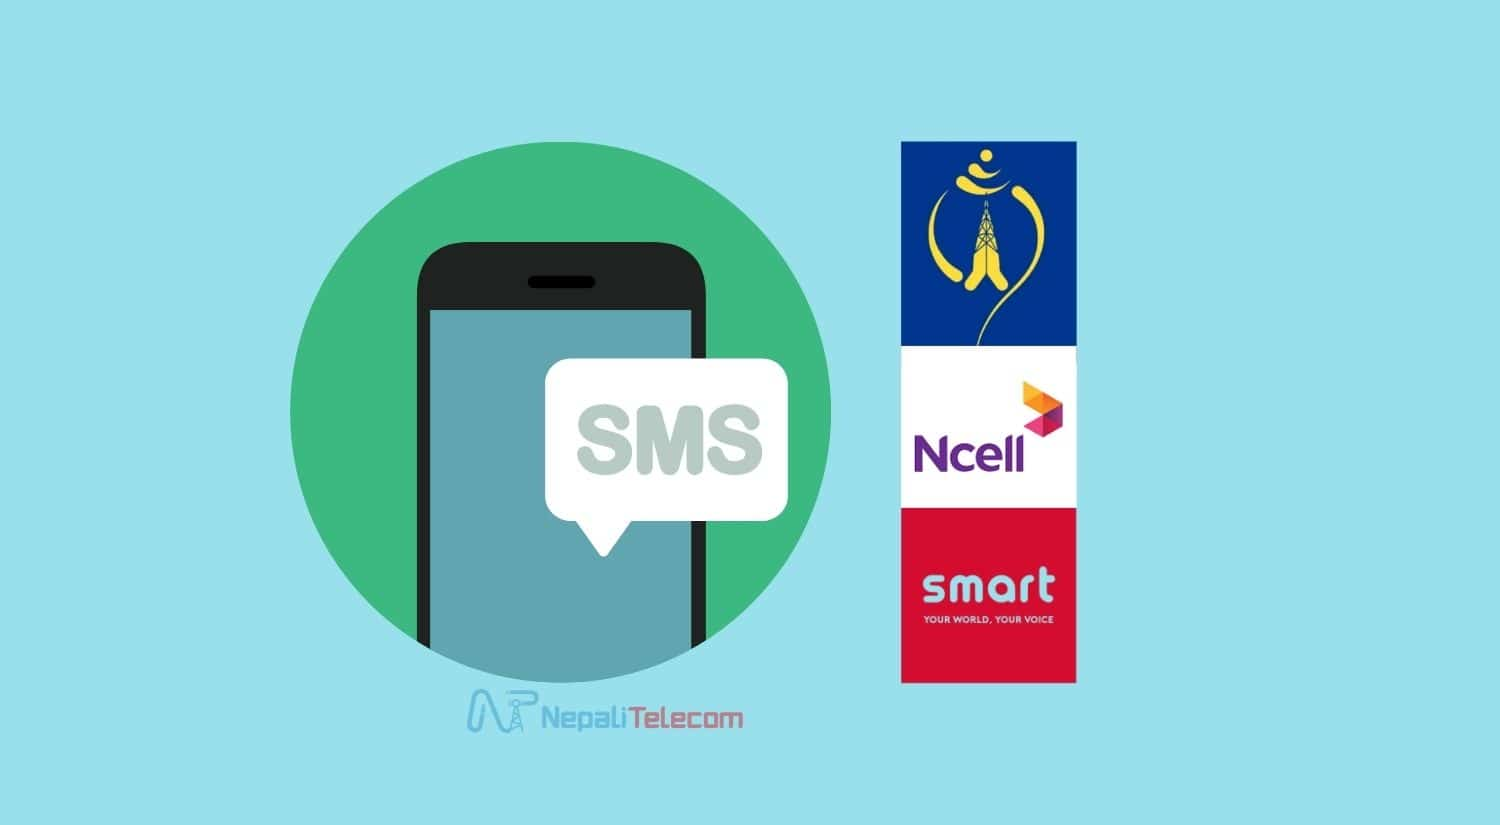 SMS Ntc Ncell Smart Cell